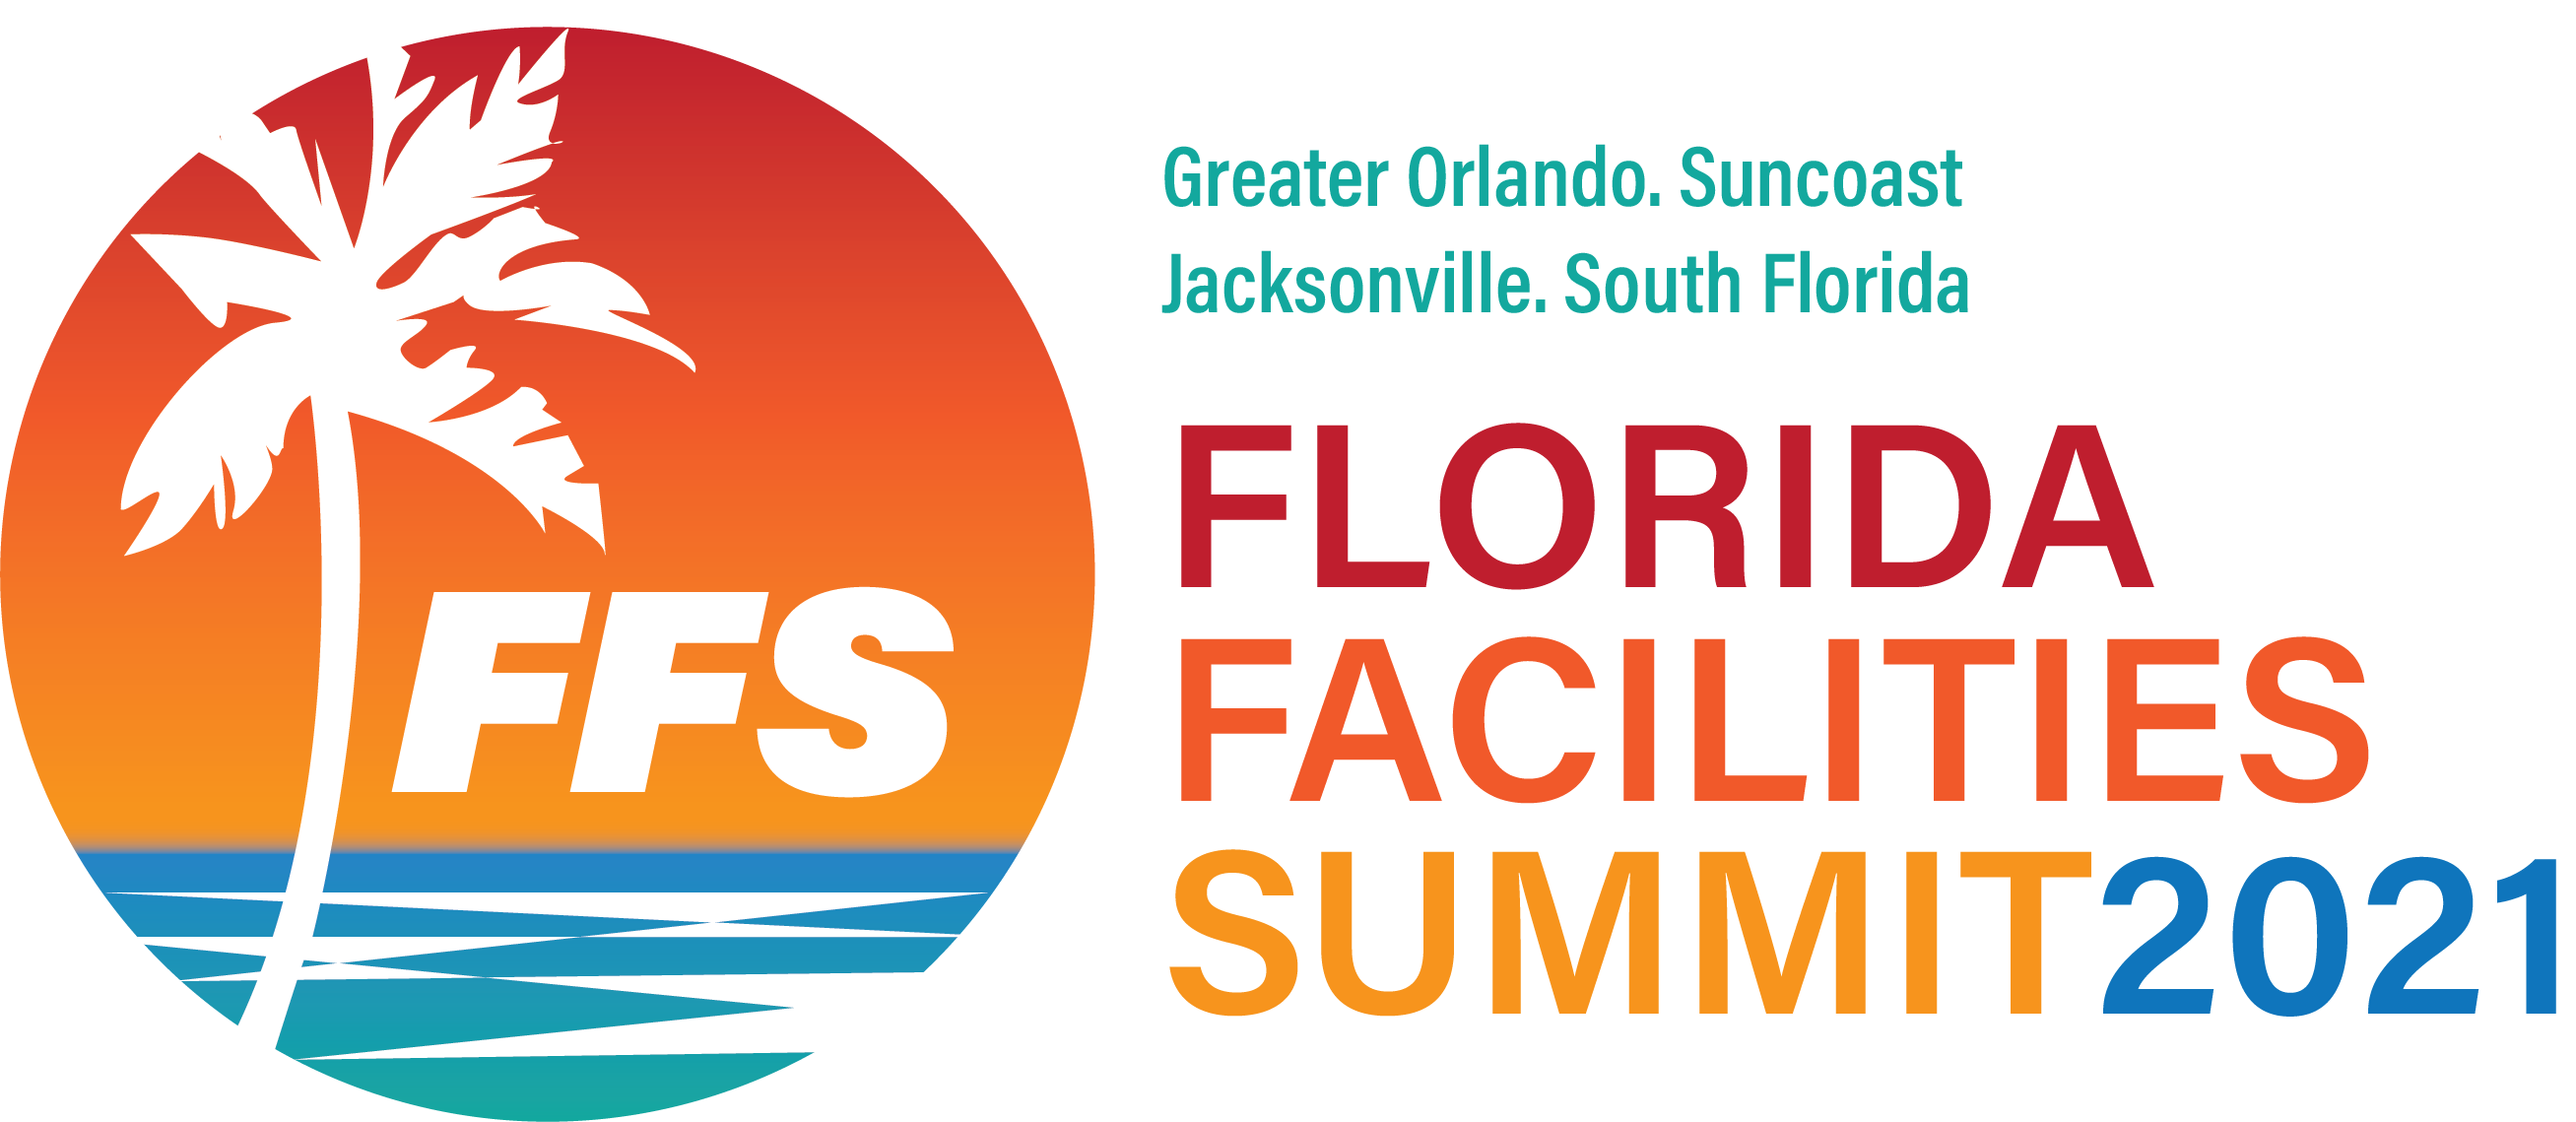 Florida Facilities Summit 2021